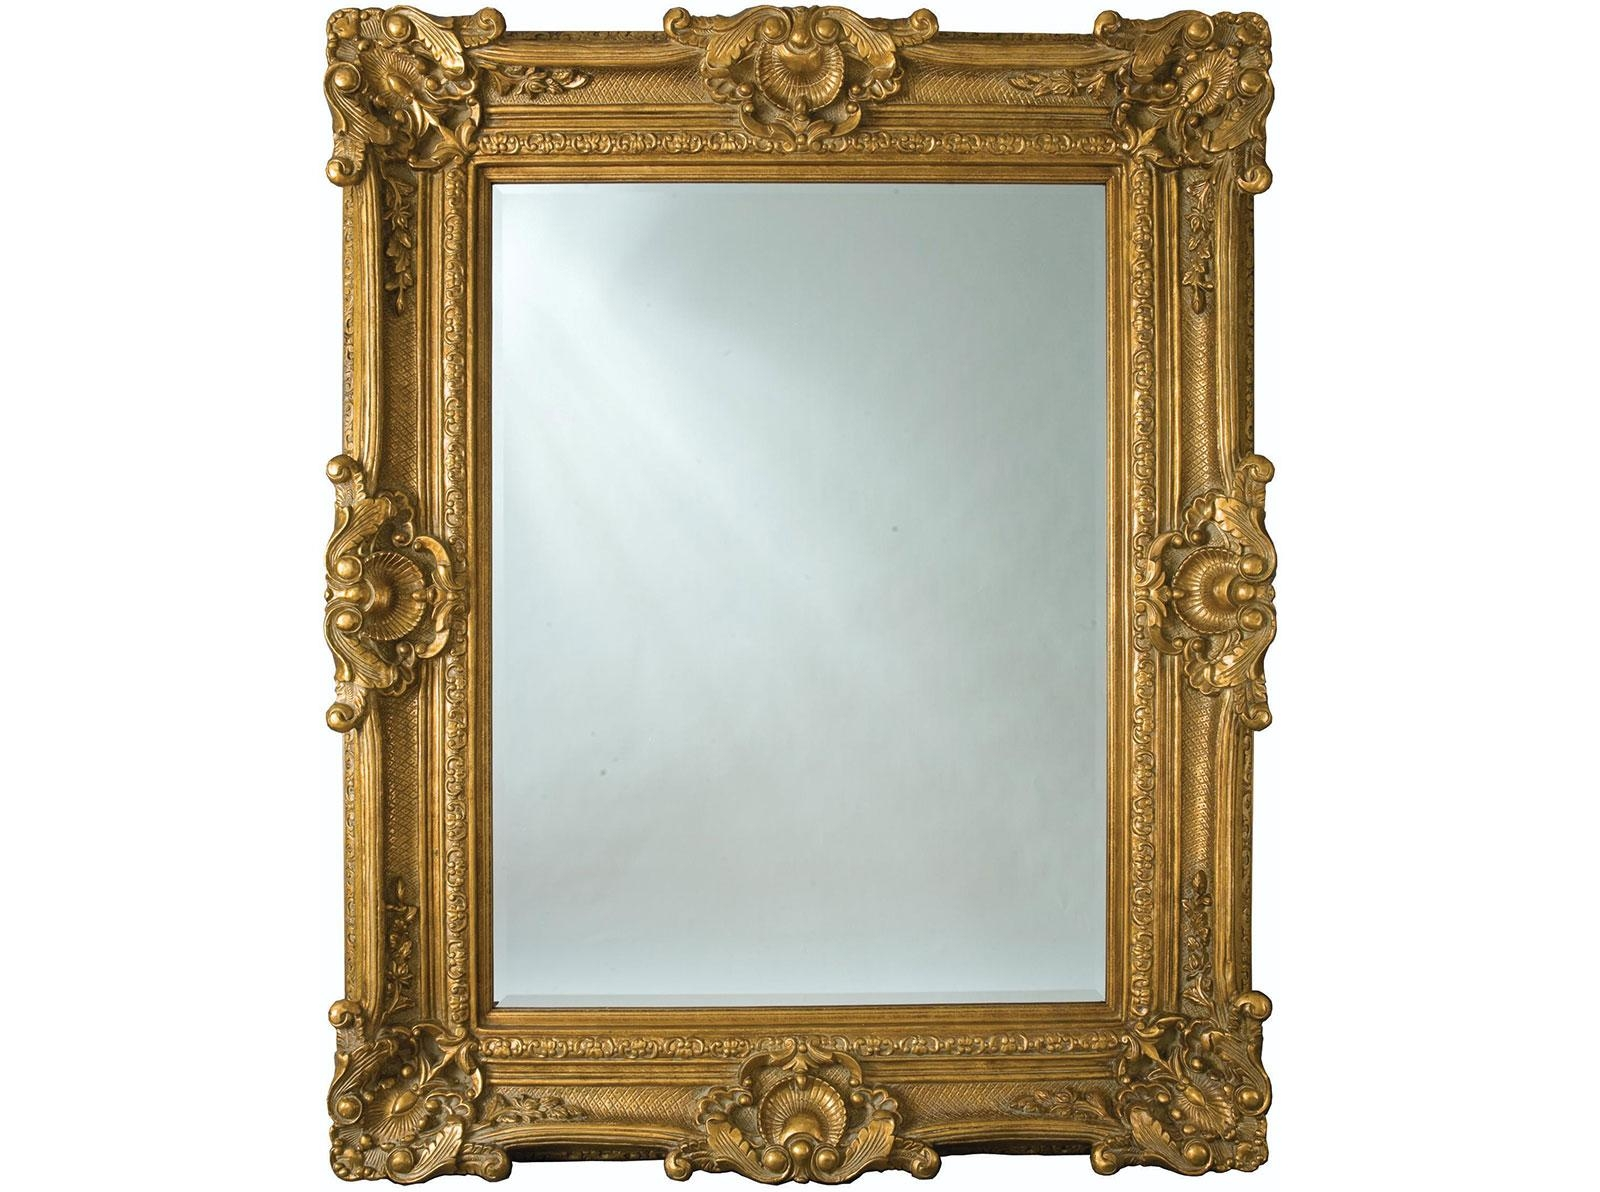 Ornate Mirrors | Bathroom Mirrors | Heritage® Regarding Ornate Bathroom Mirror (View 16 of 20)